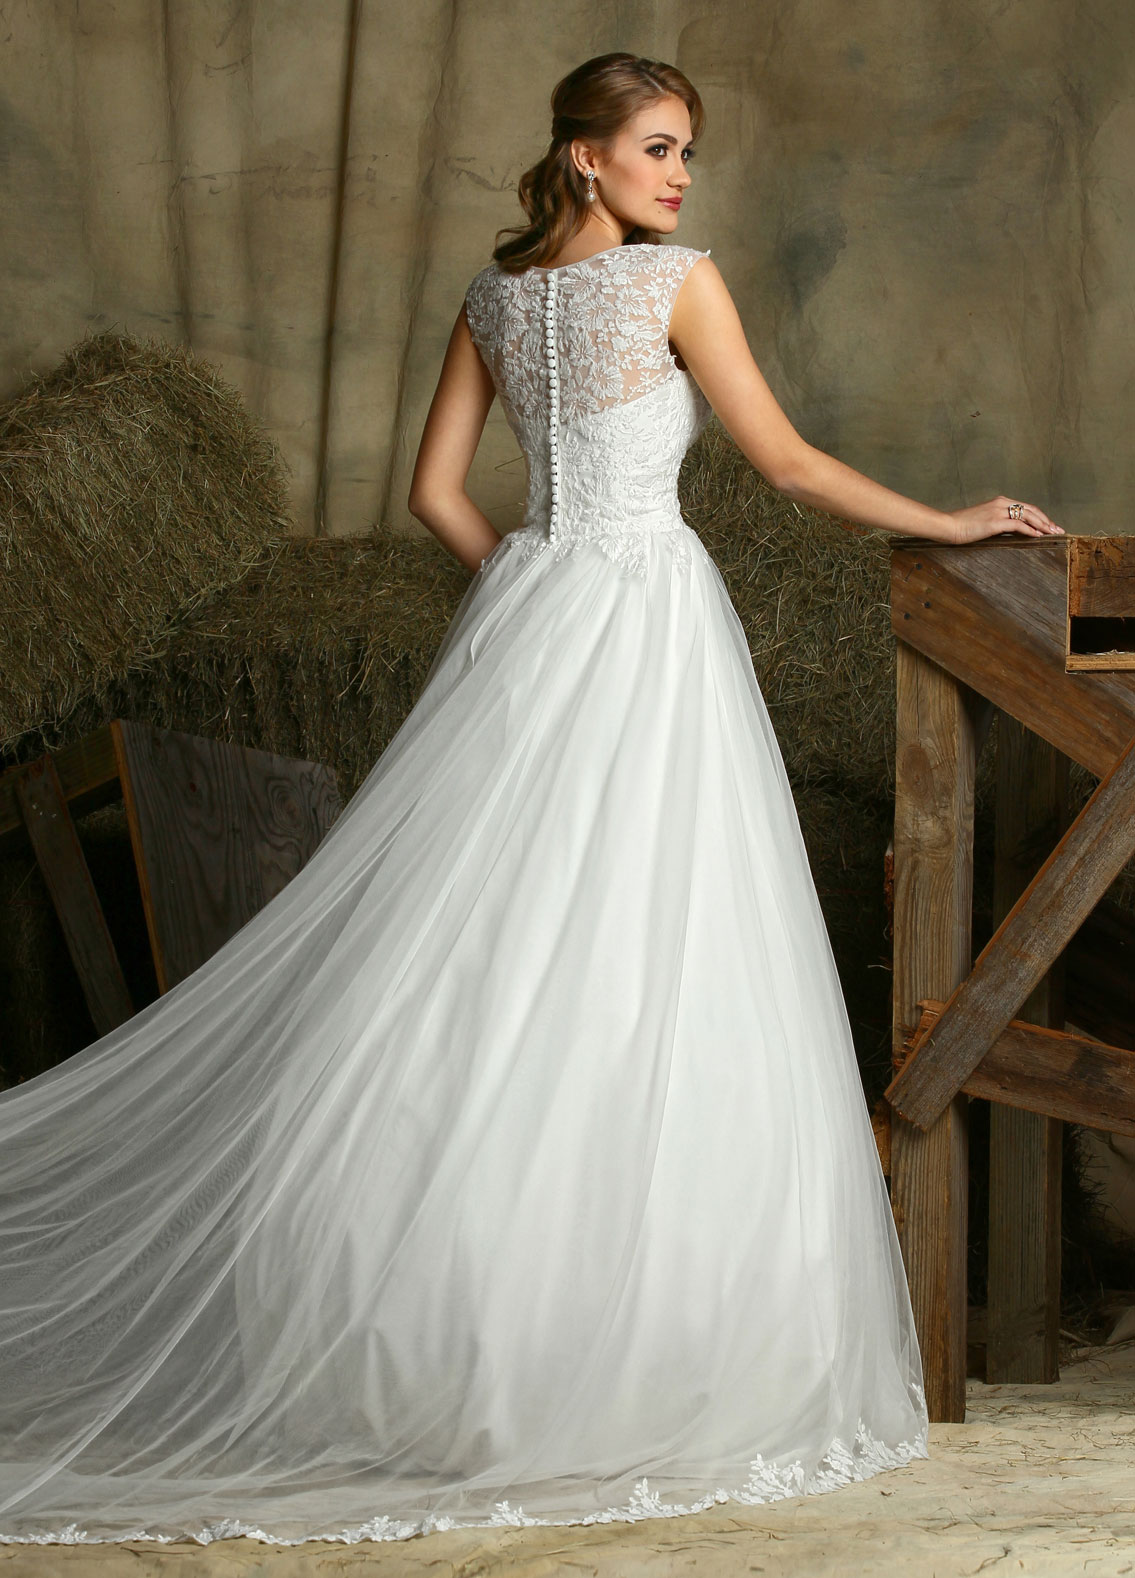 davinci wedding dresses photo - 1